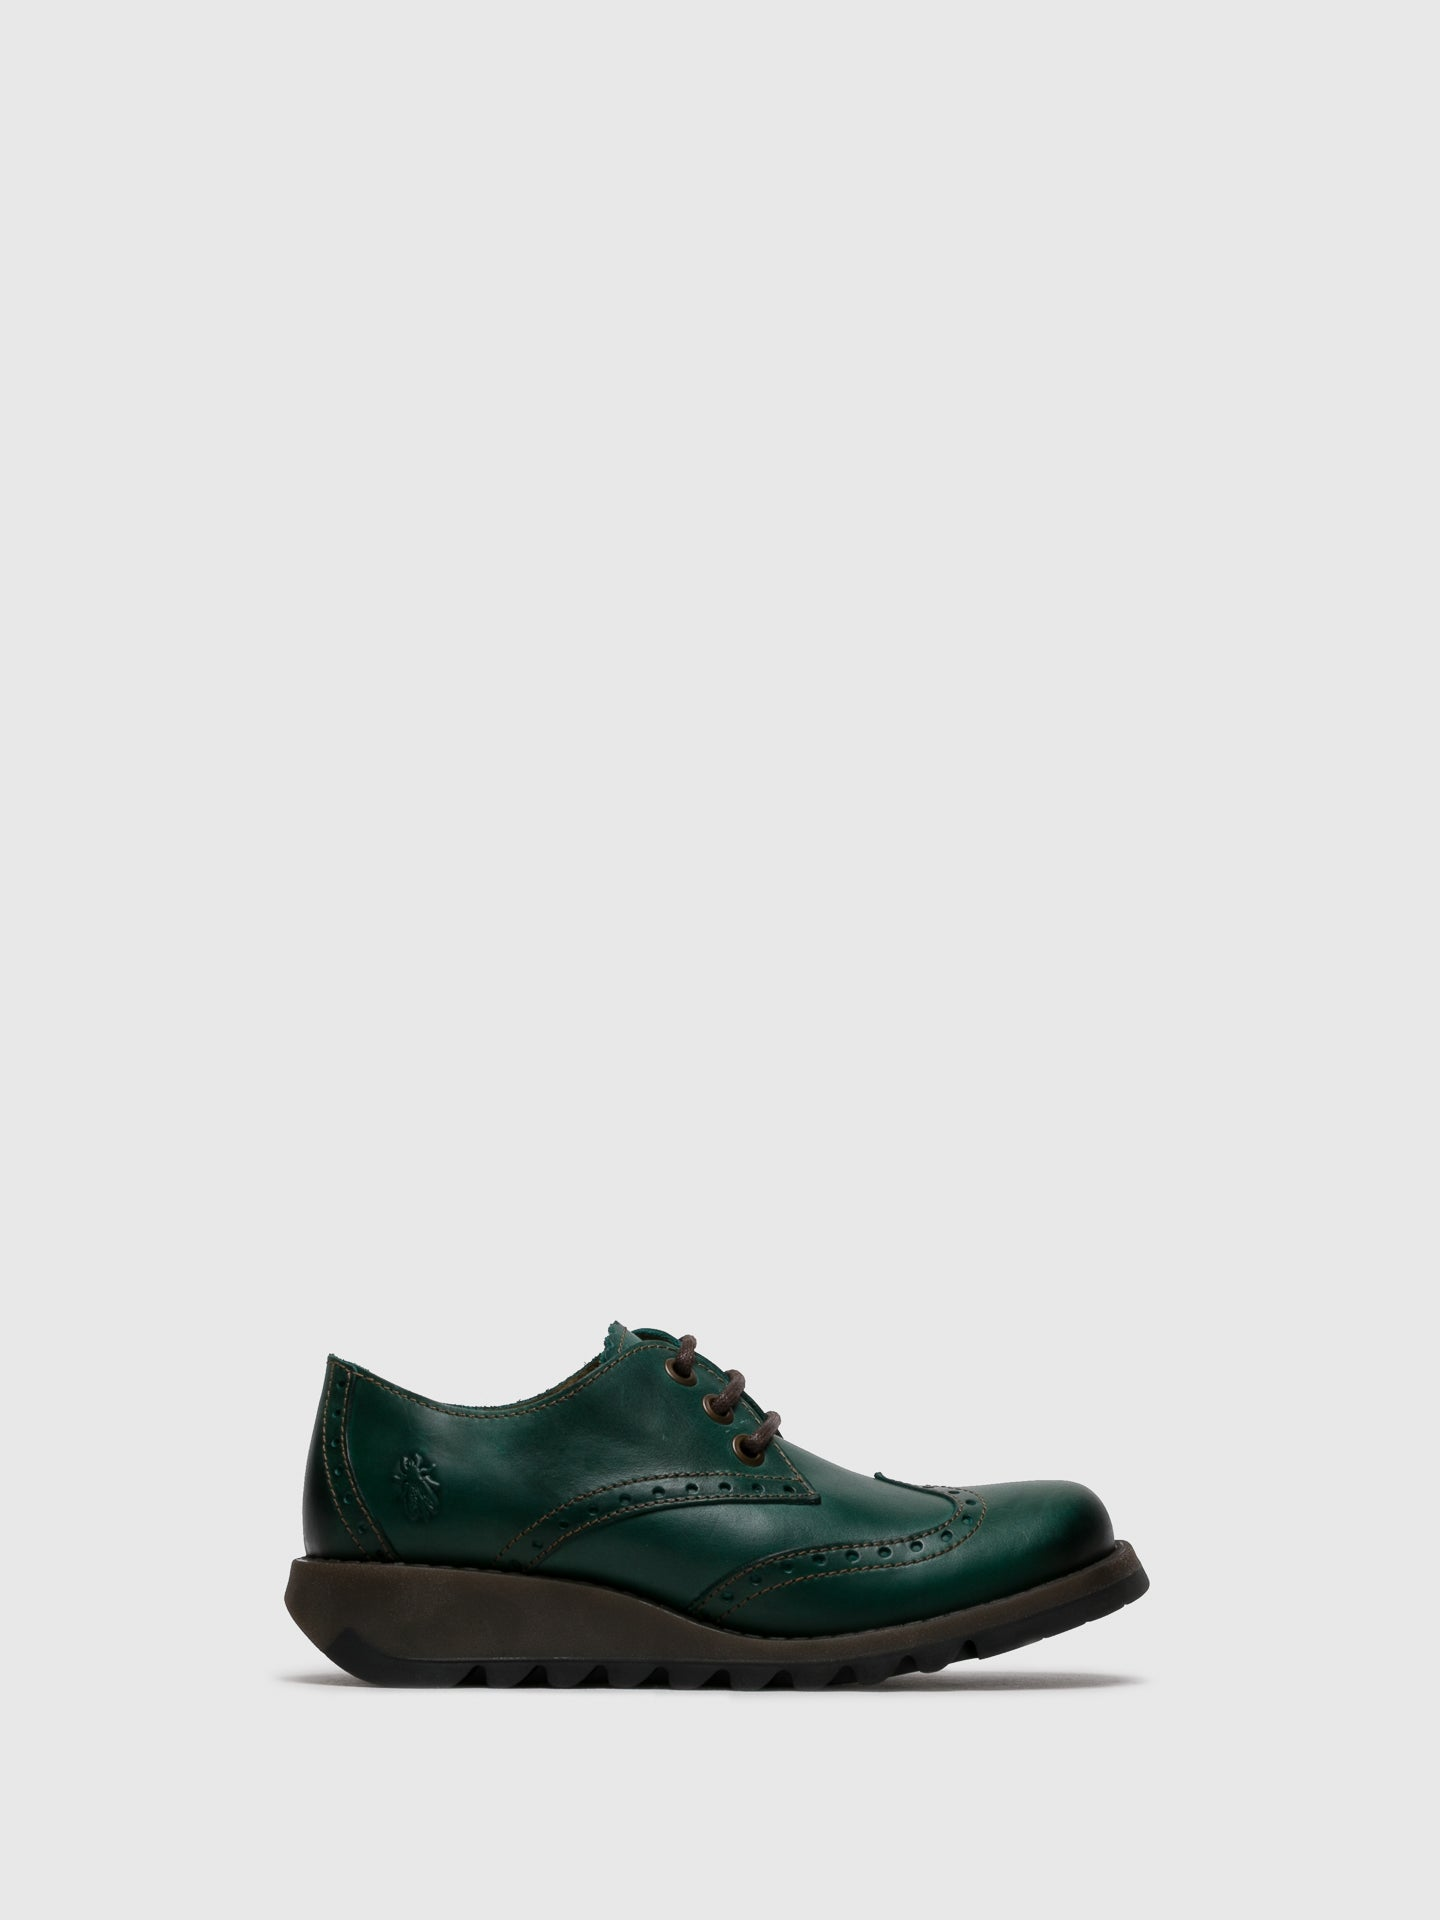 Fly London Green Leather Lace-up Shoes